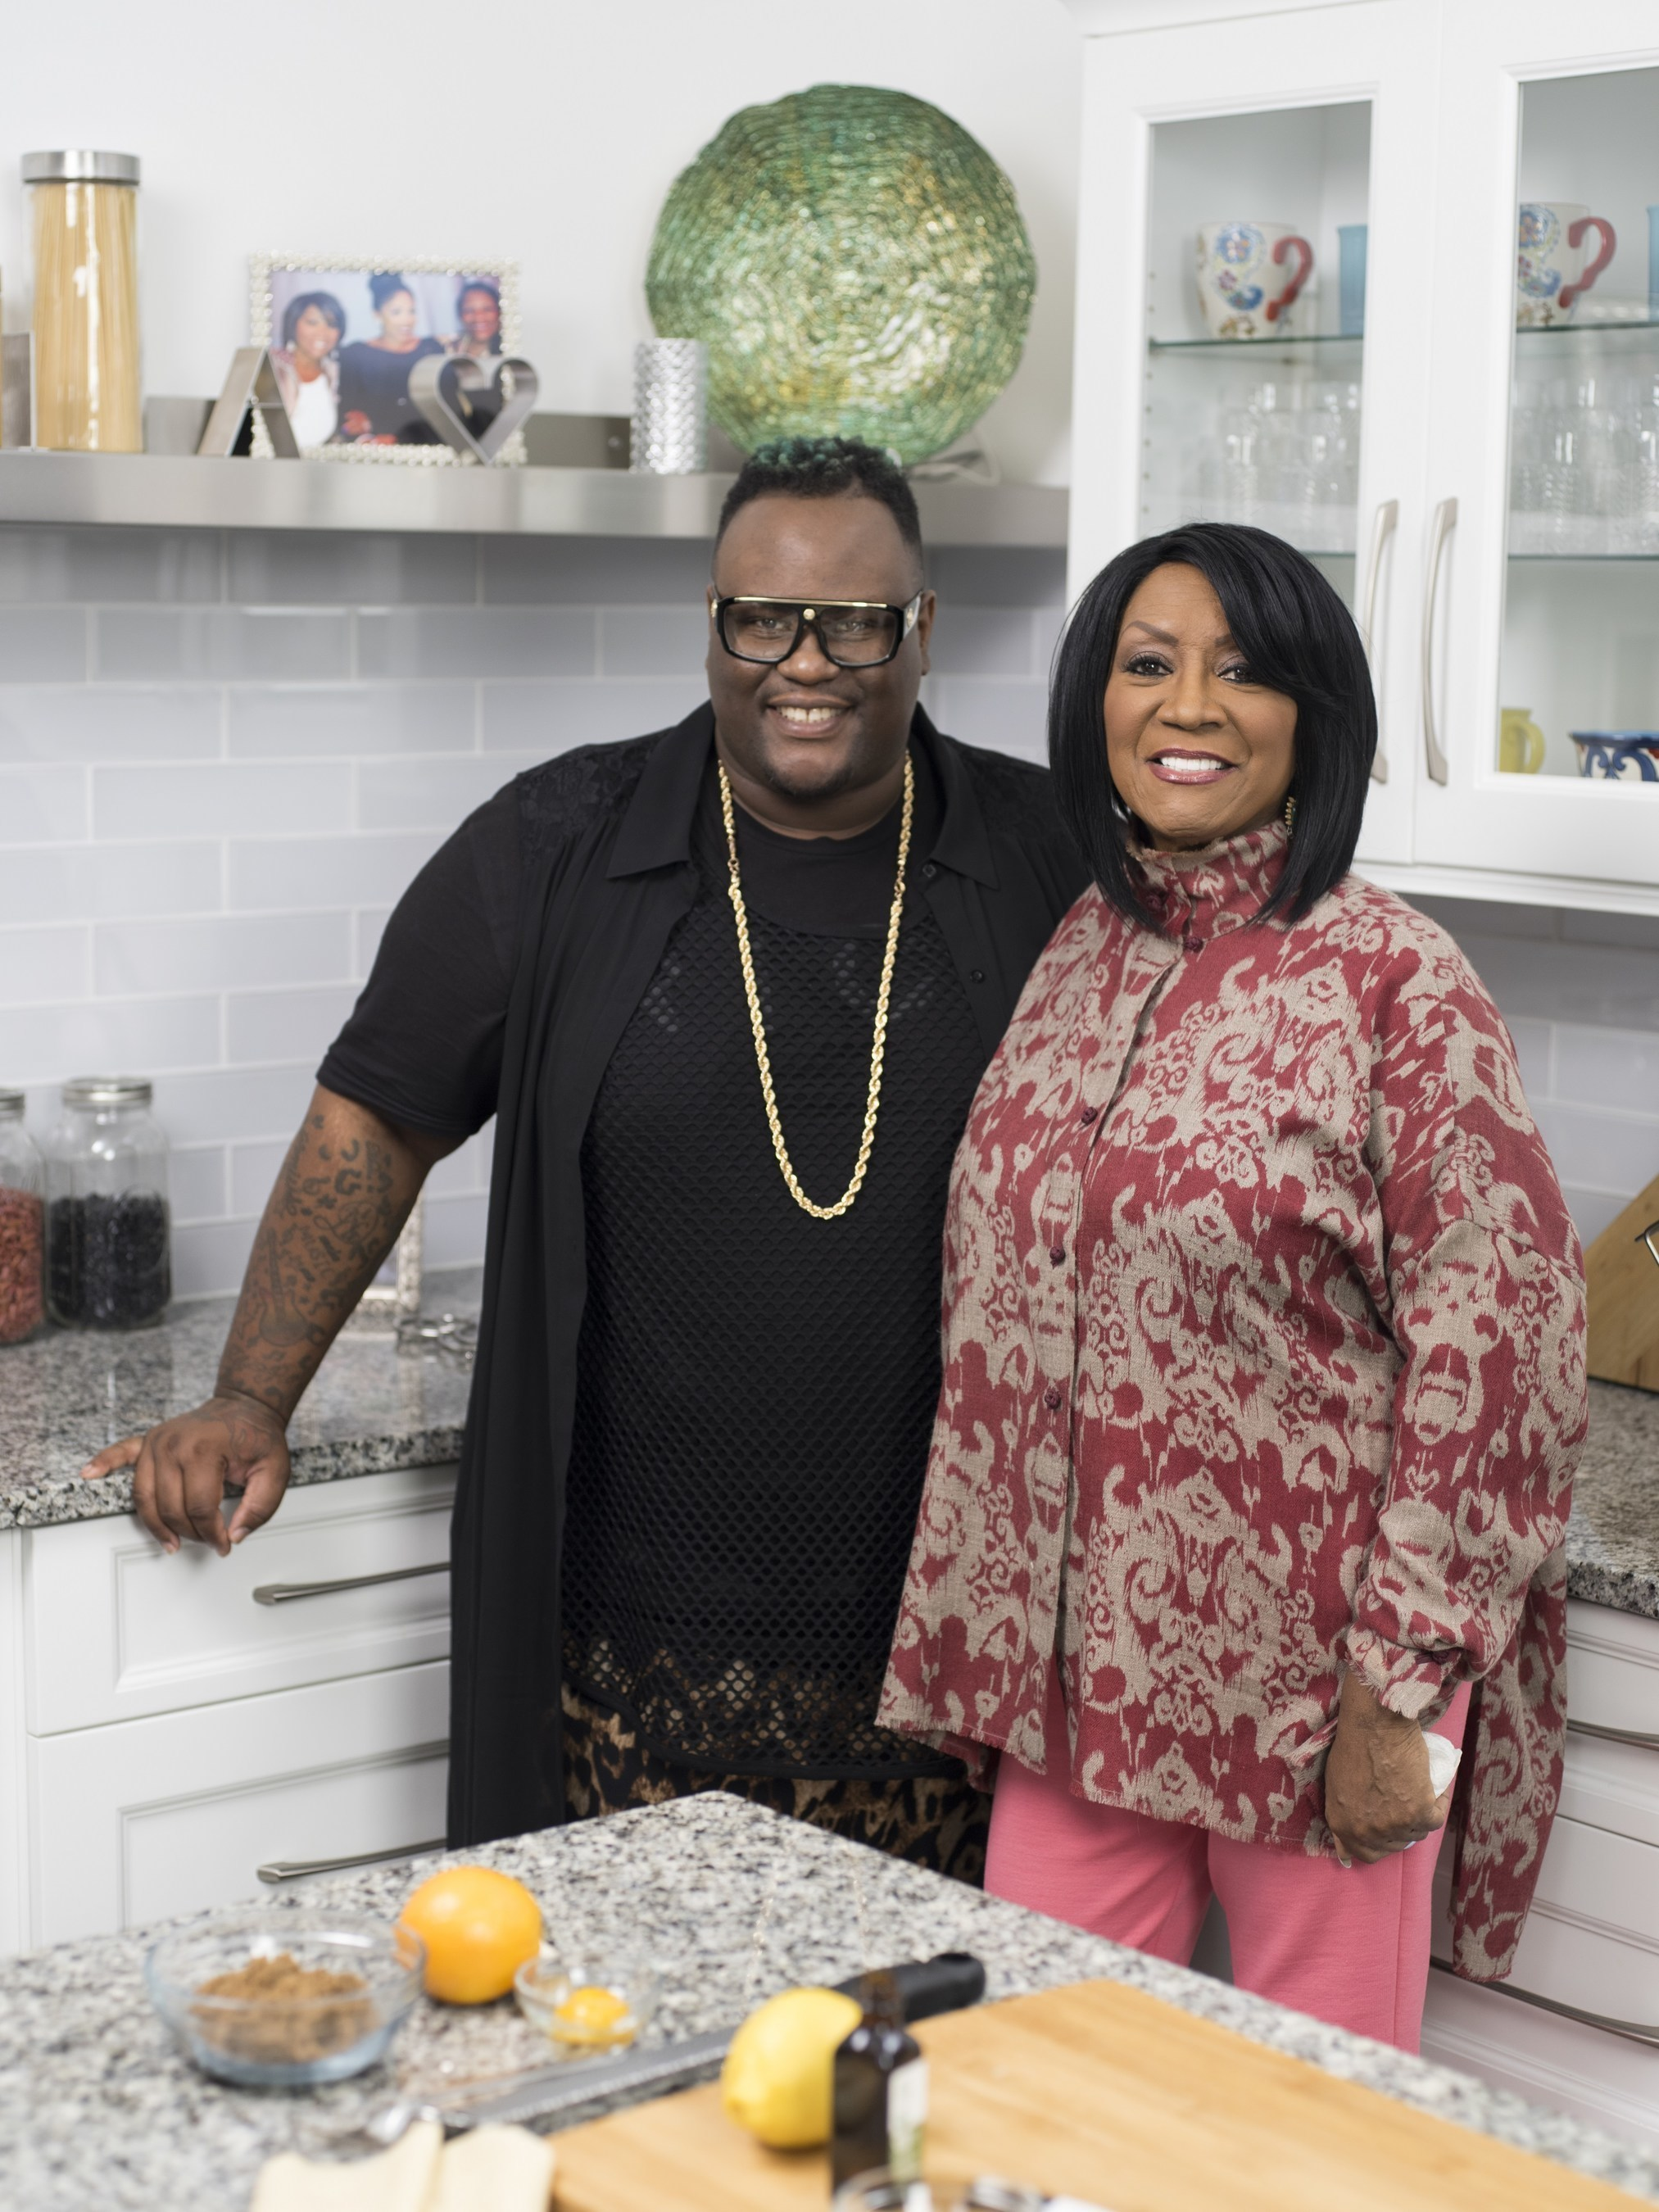 Patti Labelle Welcomes Viral Video Sensation James Wright Chanel For Evening Of Cooking, Music And Laughter In Special Event 'Patti Labelle's Holiday Pies'